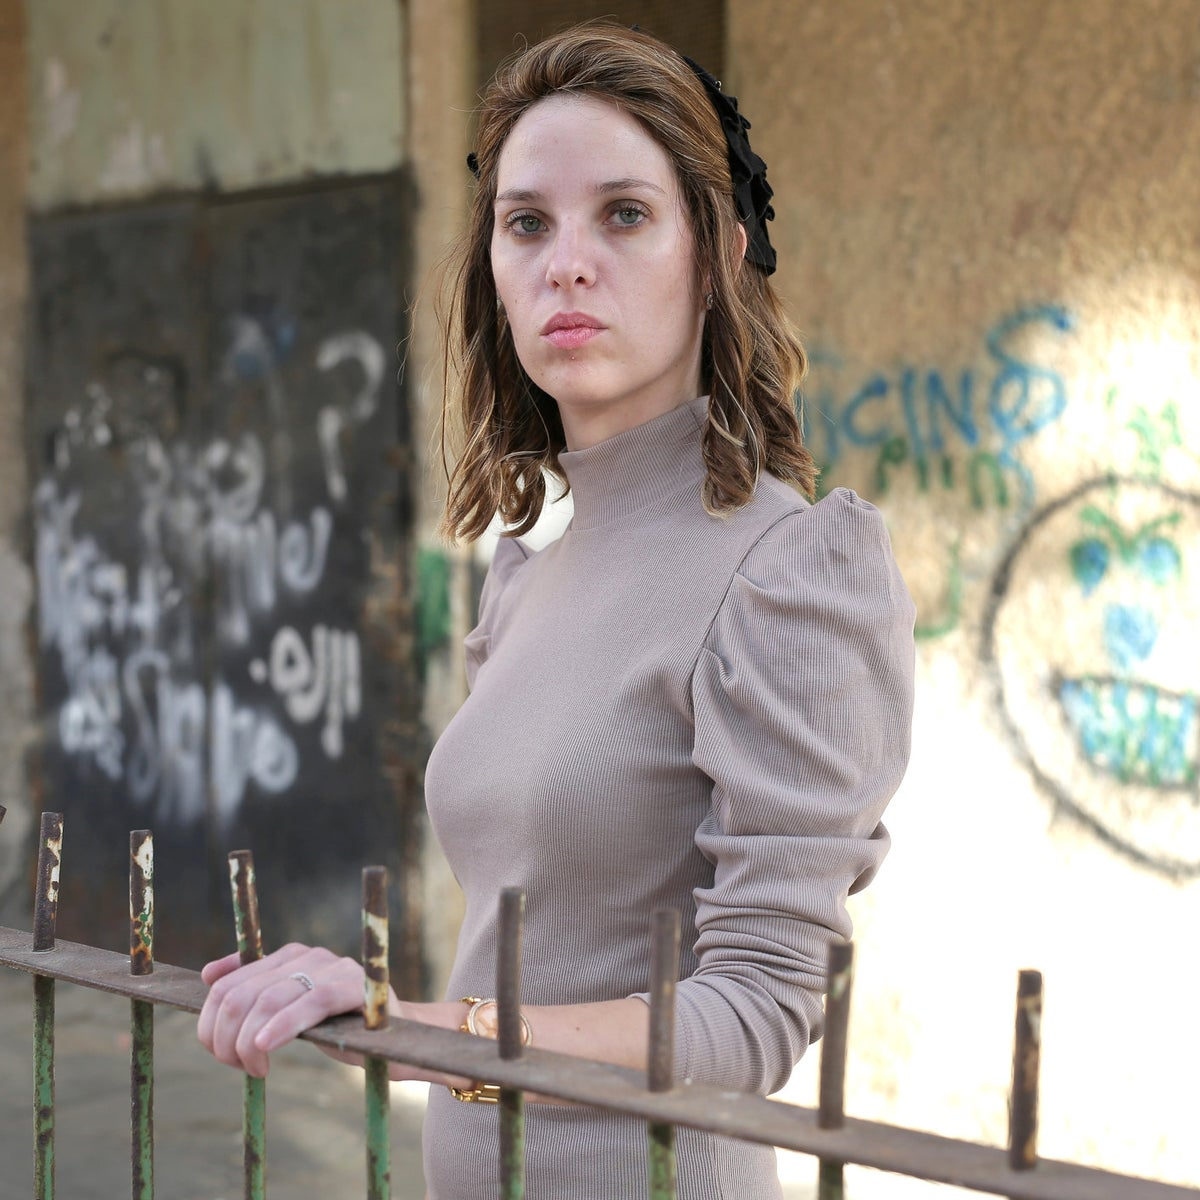 Malki Rotner, an ultra-Orthodox Israeli woman who stars in a documentary TV series on her Belz sect.